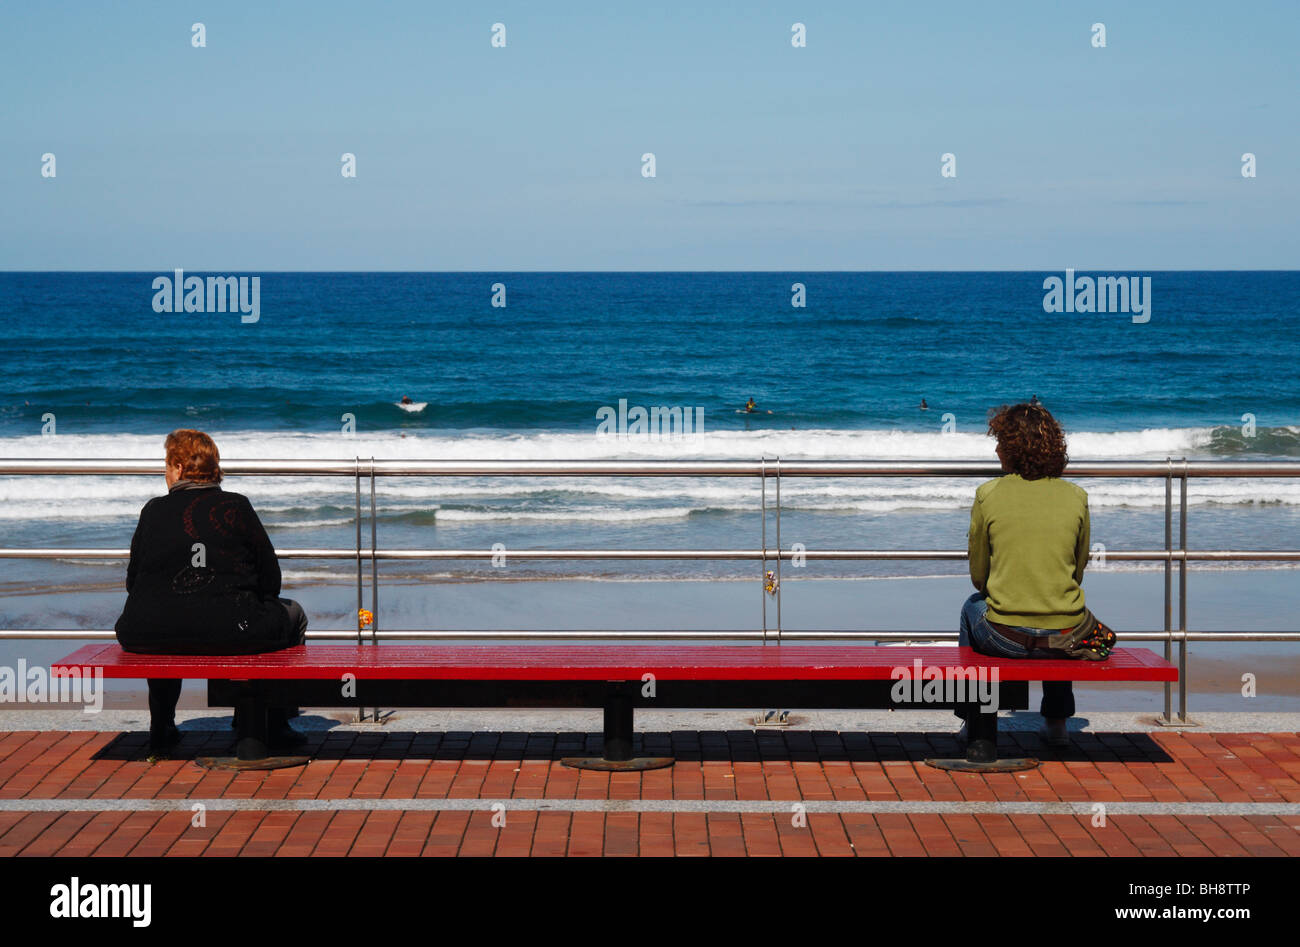 Young slim woman and large elderly lady sitting on bench looking out to  sea. -